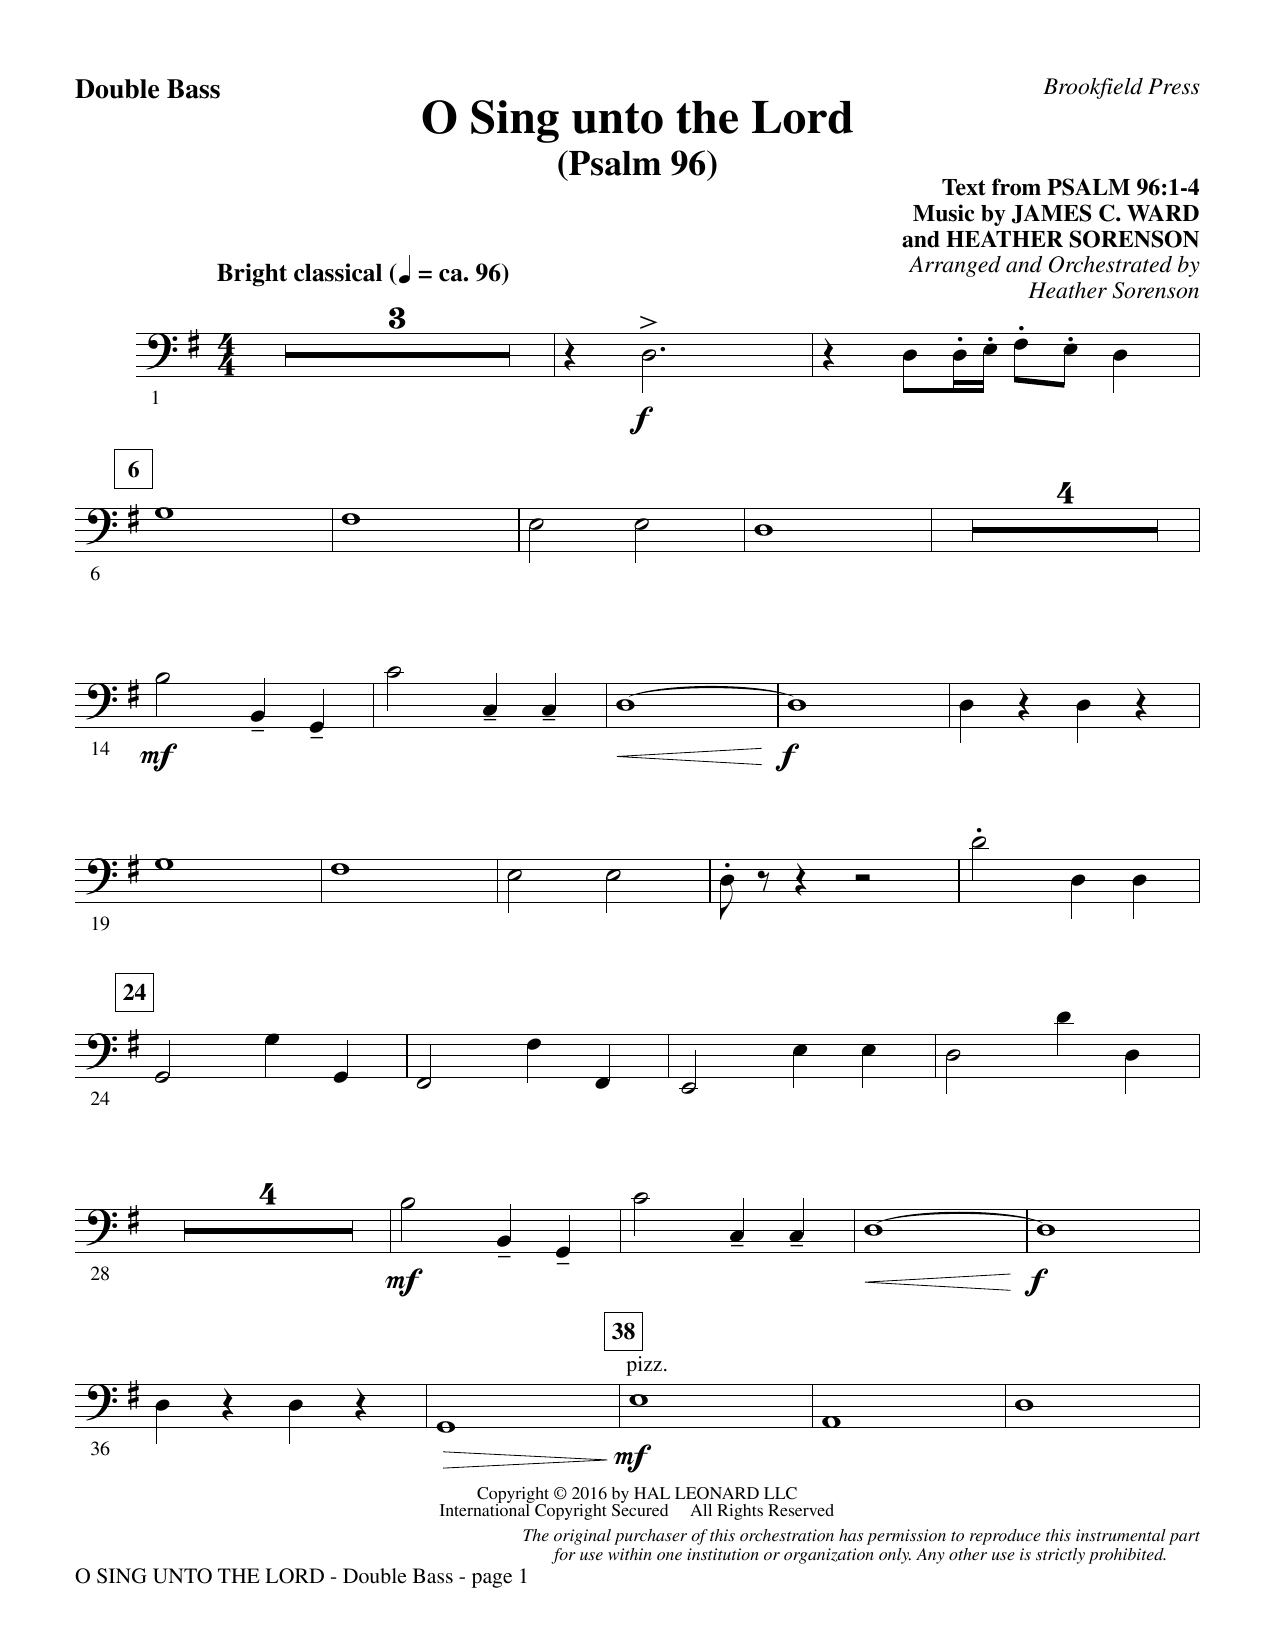 O Sing Unto the Lord - Double Bass Sheet Music